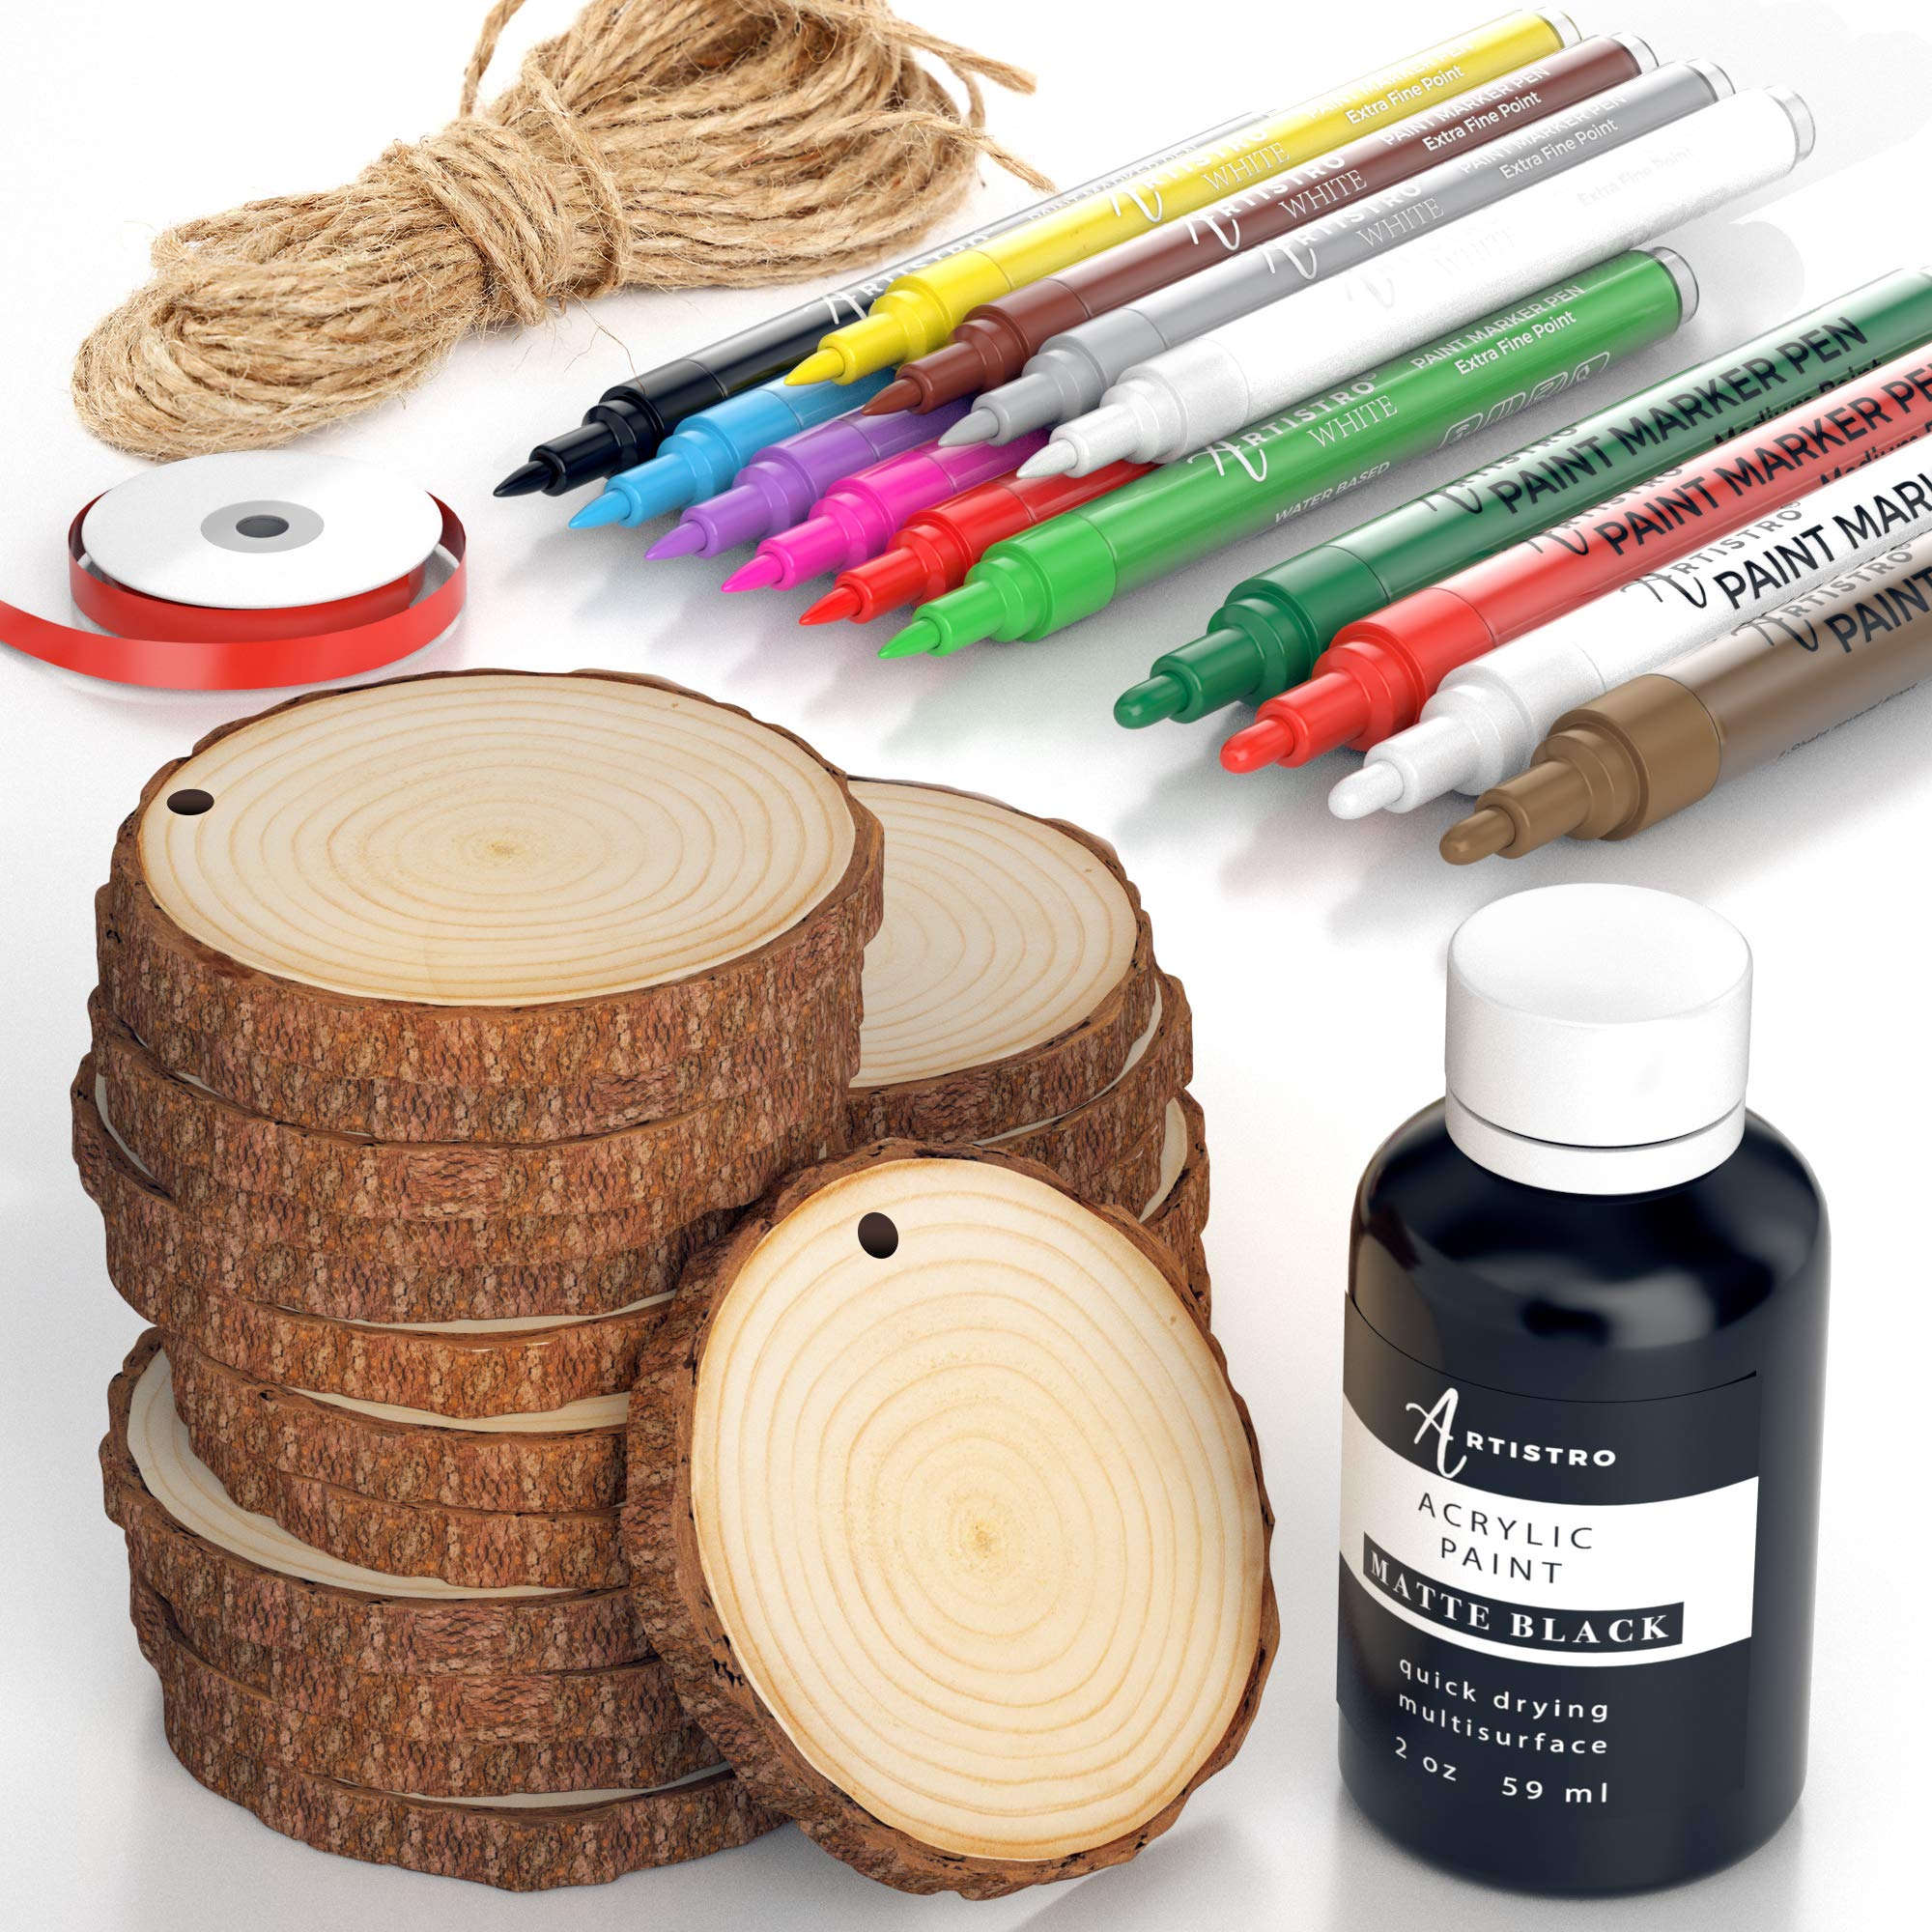 Wood Slices Kit, 24 Natural Unfinished Round Wooden Discs, 14 Artistro Acrylic Marker pens, Black Paint, Craft Supplies for Kids & Adults - Art Kit for Christmas Ornaments & DIY, Tree Coaster Circles